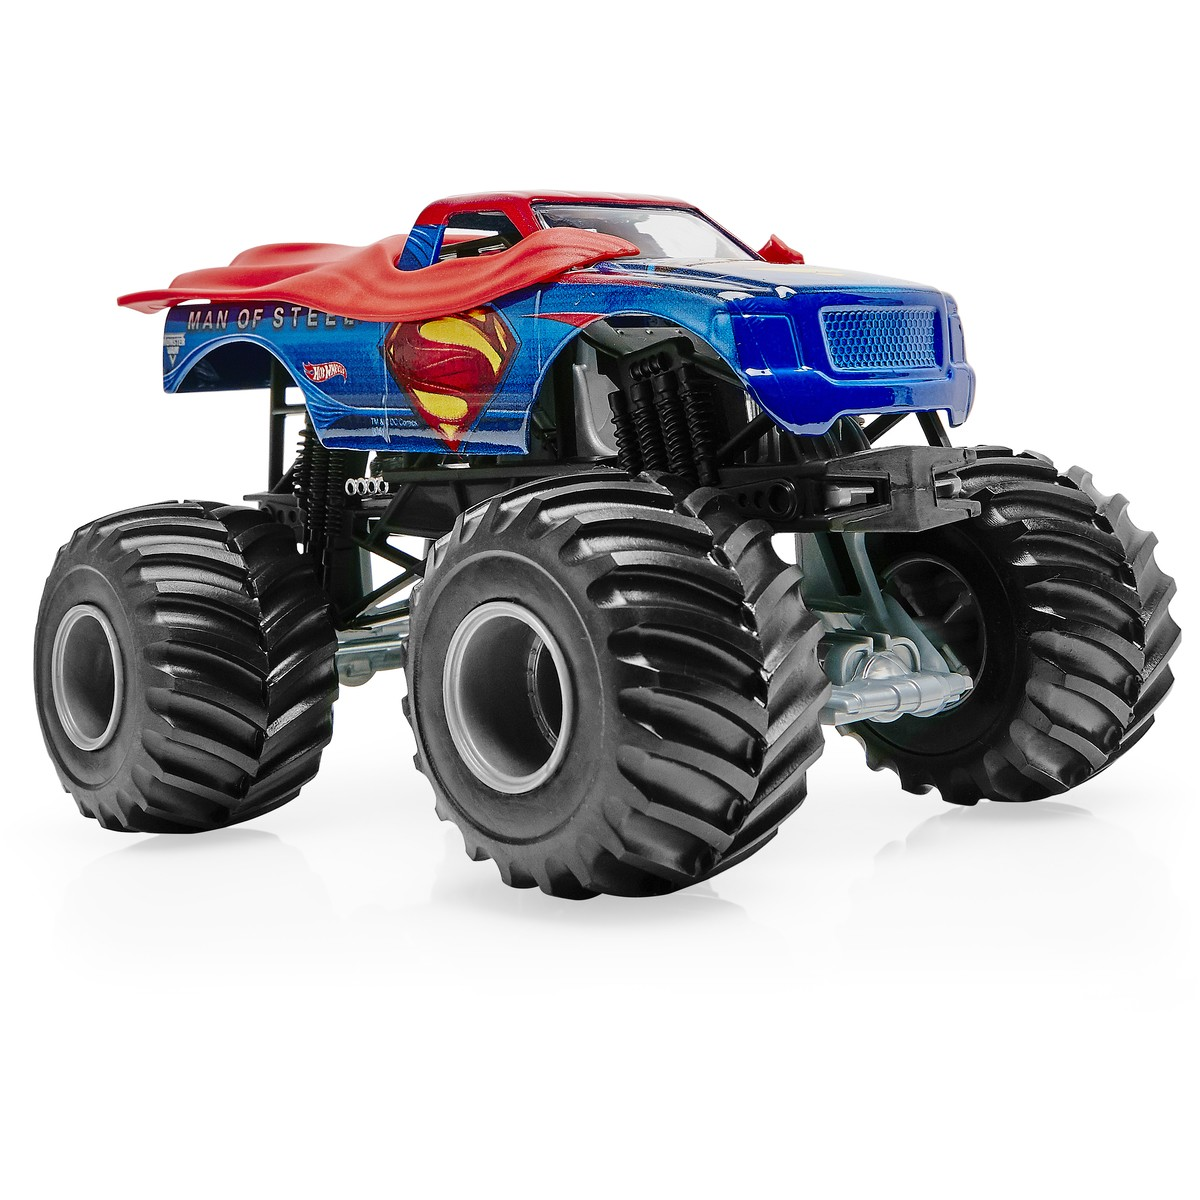 Hot Wheels Monster Jam 1 24 Diecast Vehicle   Assorted    BIG W Hot Wheels Monster Jam 1 24 Diecast Vehicle   Assorted